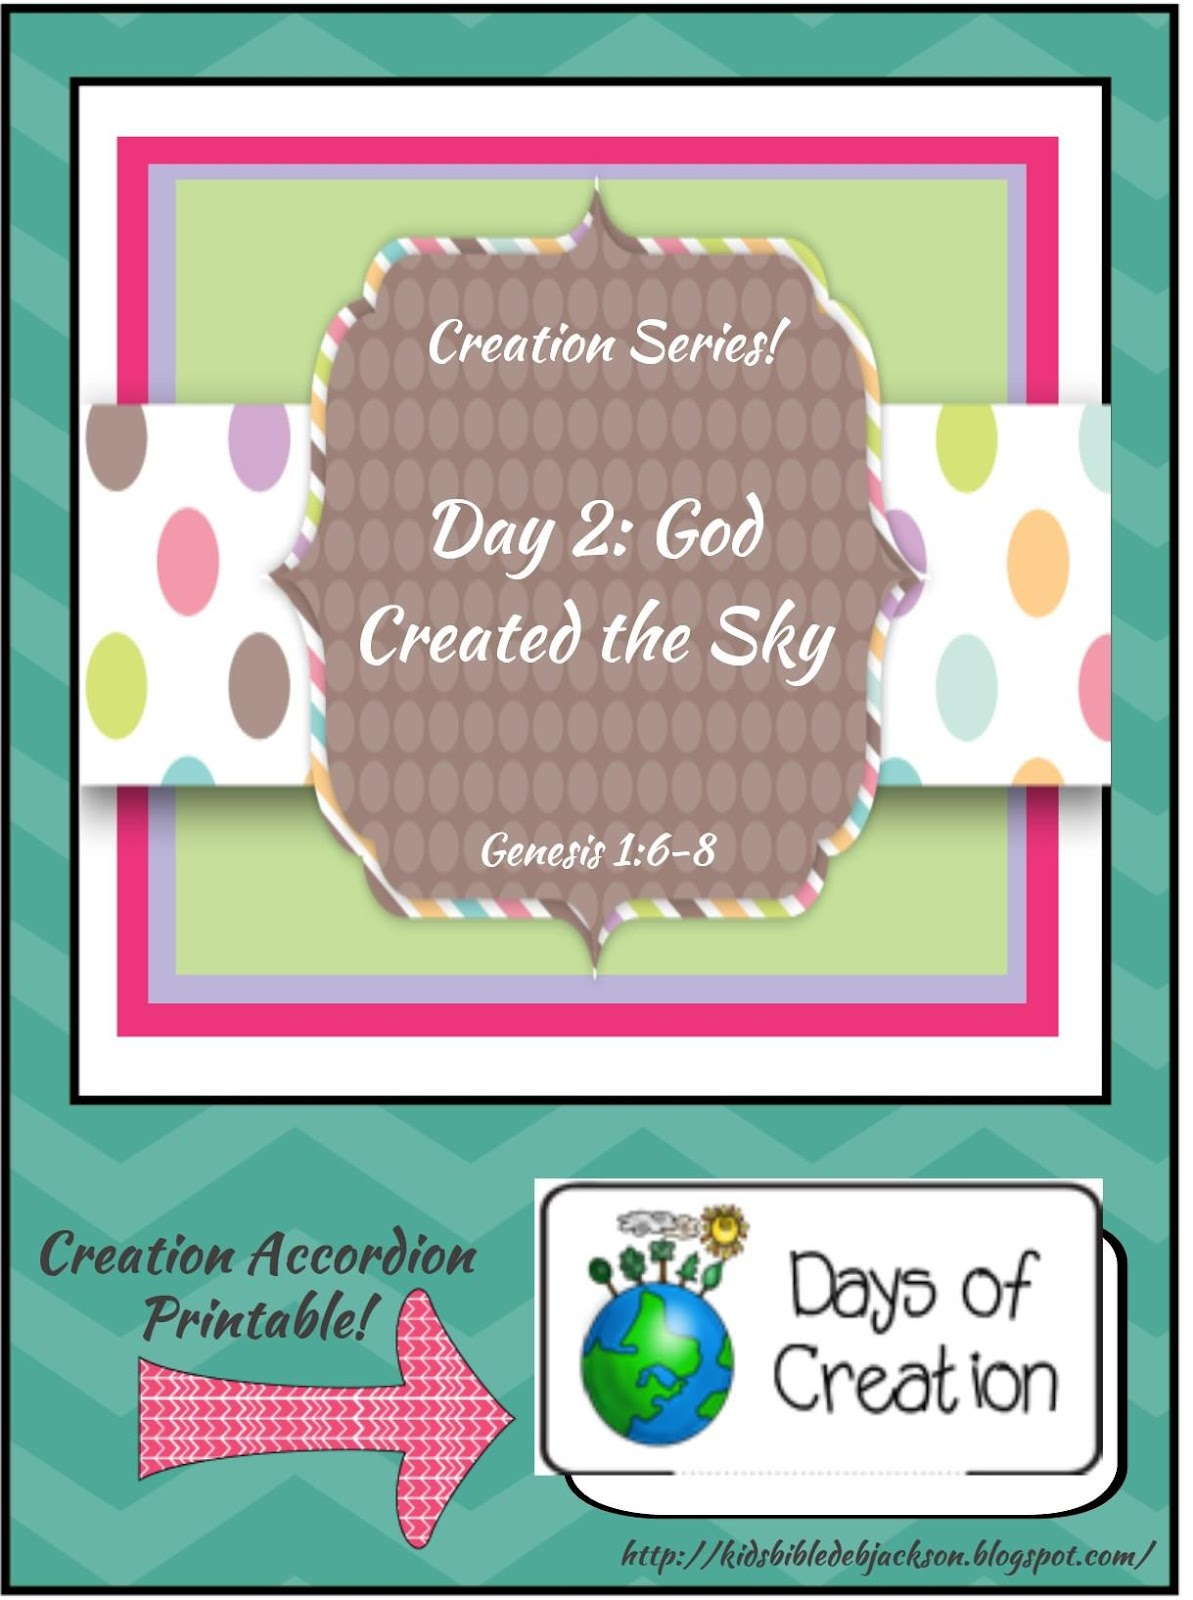 http://kidsbibledebjackson.blogspot.com/2015/01/the-creation-for-kids-day-2.html